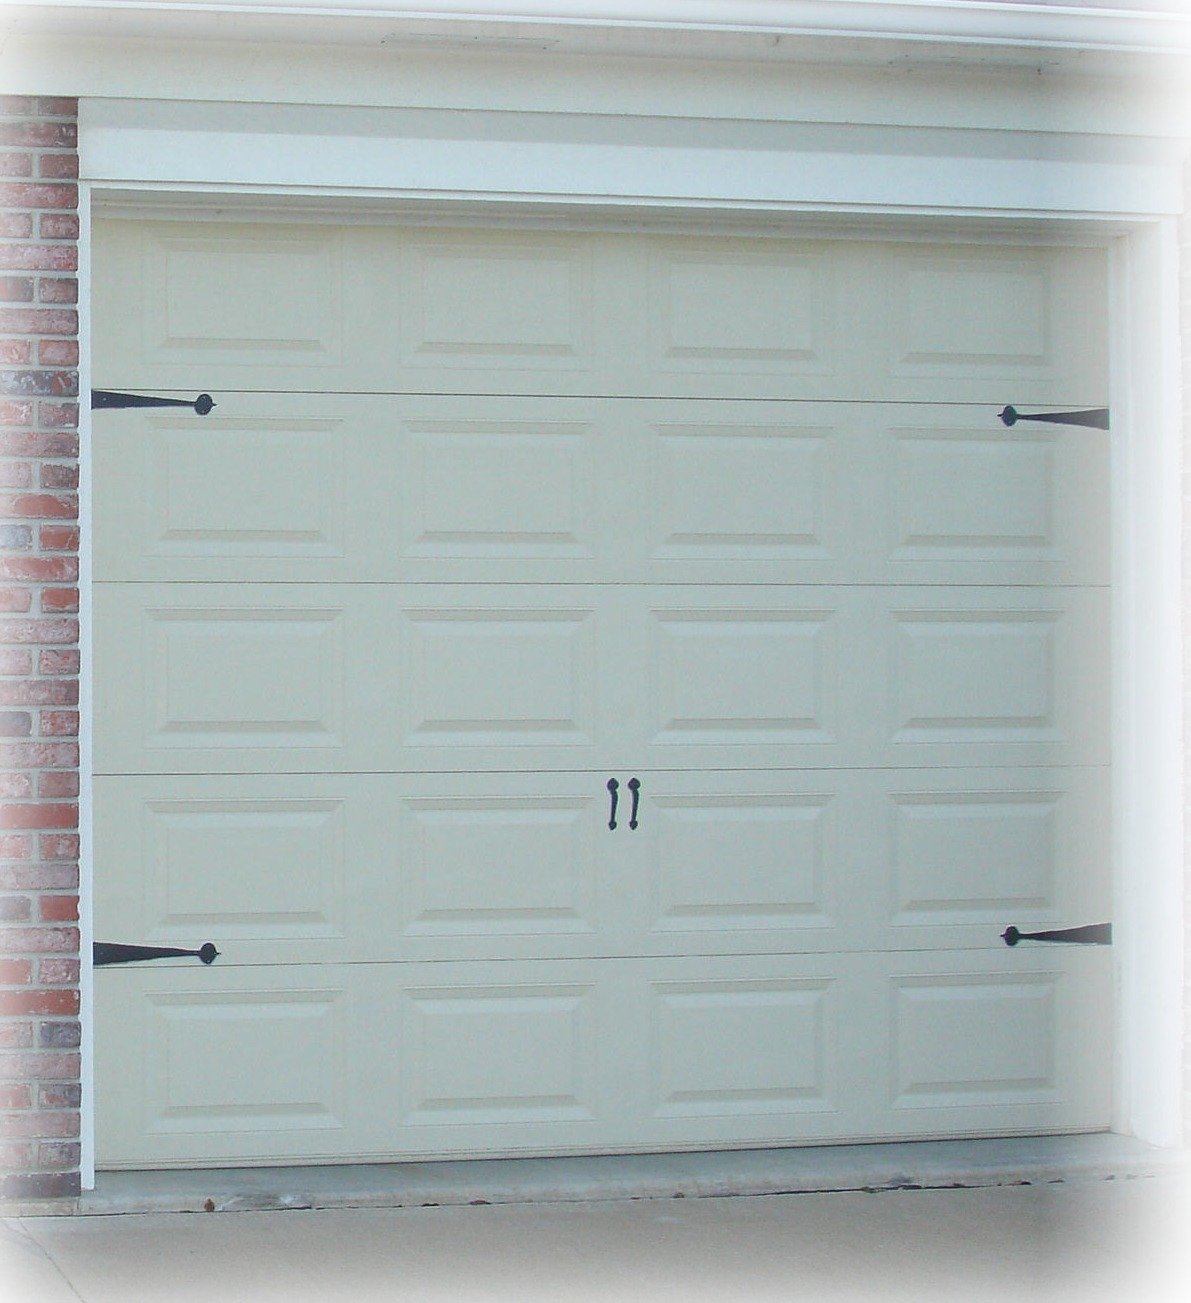 Carriage house garage doors without windows - So I Gave Him Windows By Painting Them Black With A Few Gray Streaks In Them I Noticed That When I Saw Windows In Garage Doors